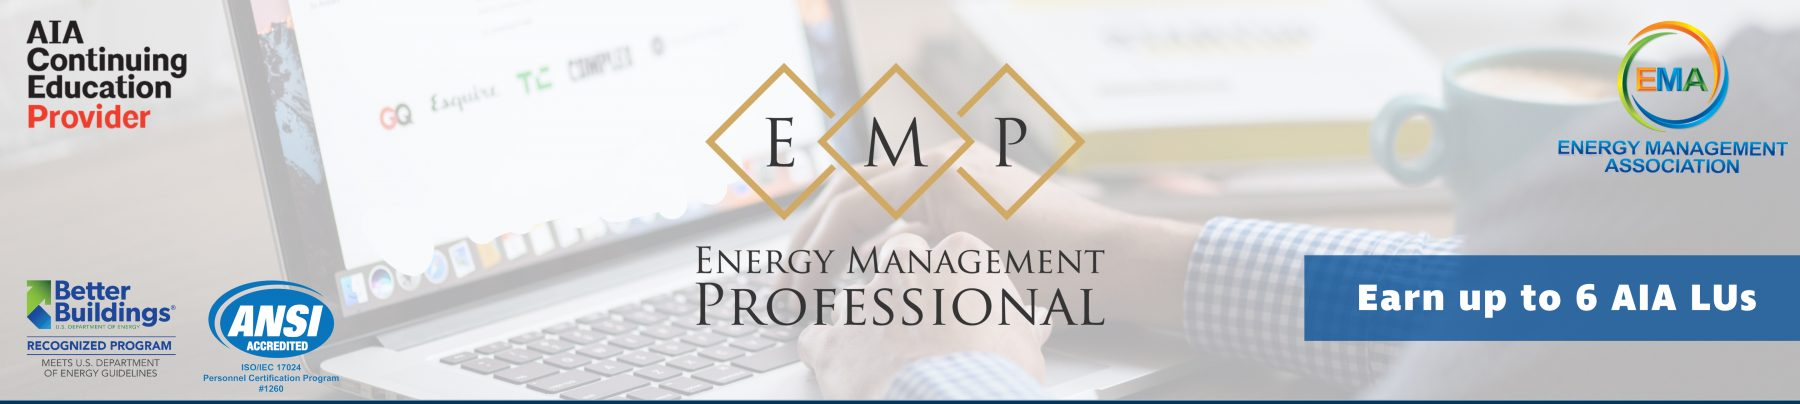 energy management professional certification